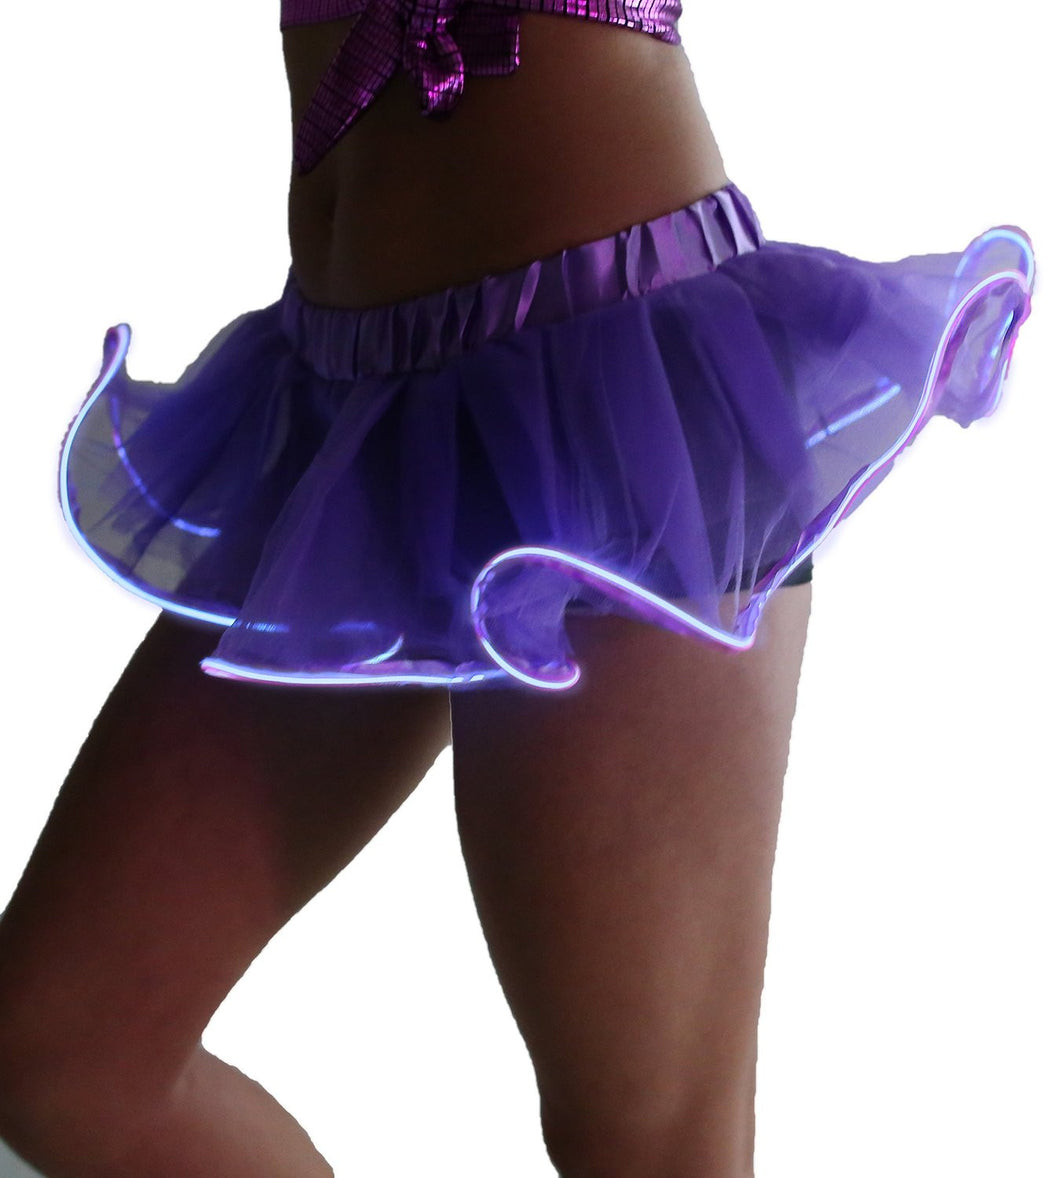 Light Up Tutus Dress Mini Costumes Tutu by Electric Styles